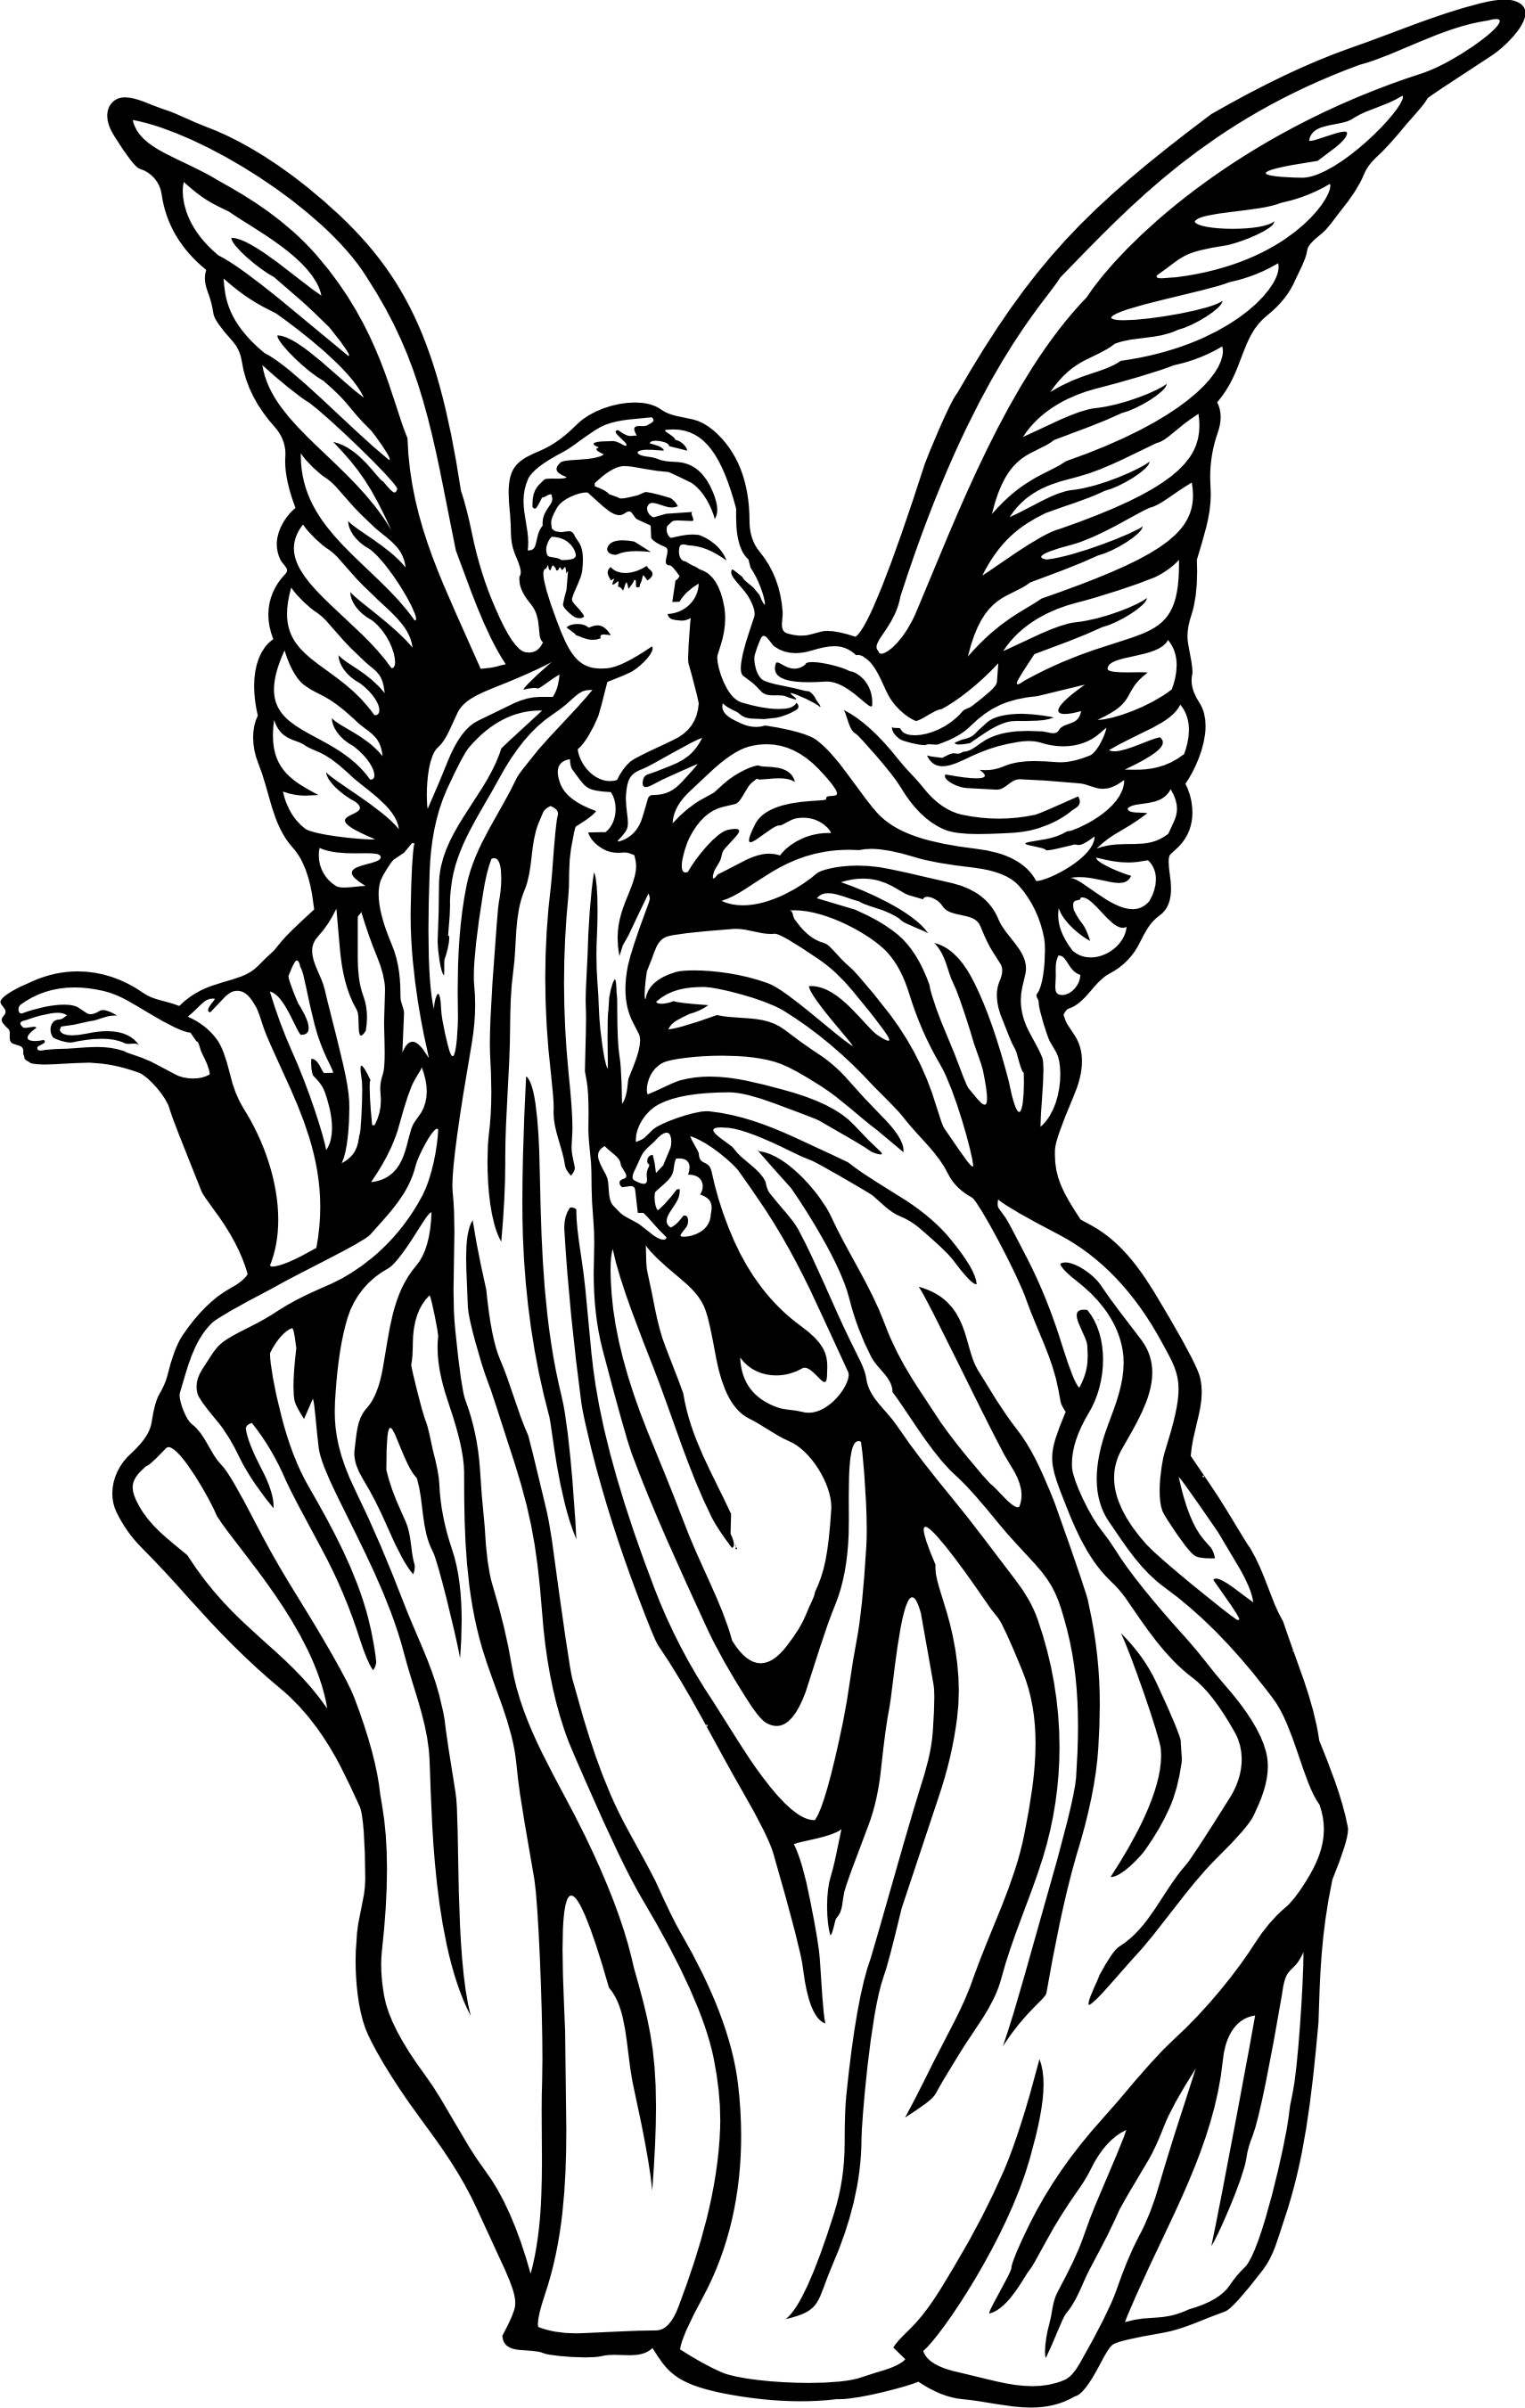 Angel clipart free black and white free download best angel clipart free black and white on - Free evil angel pictures ...